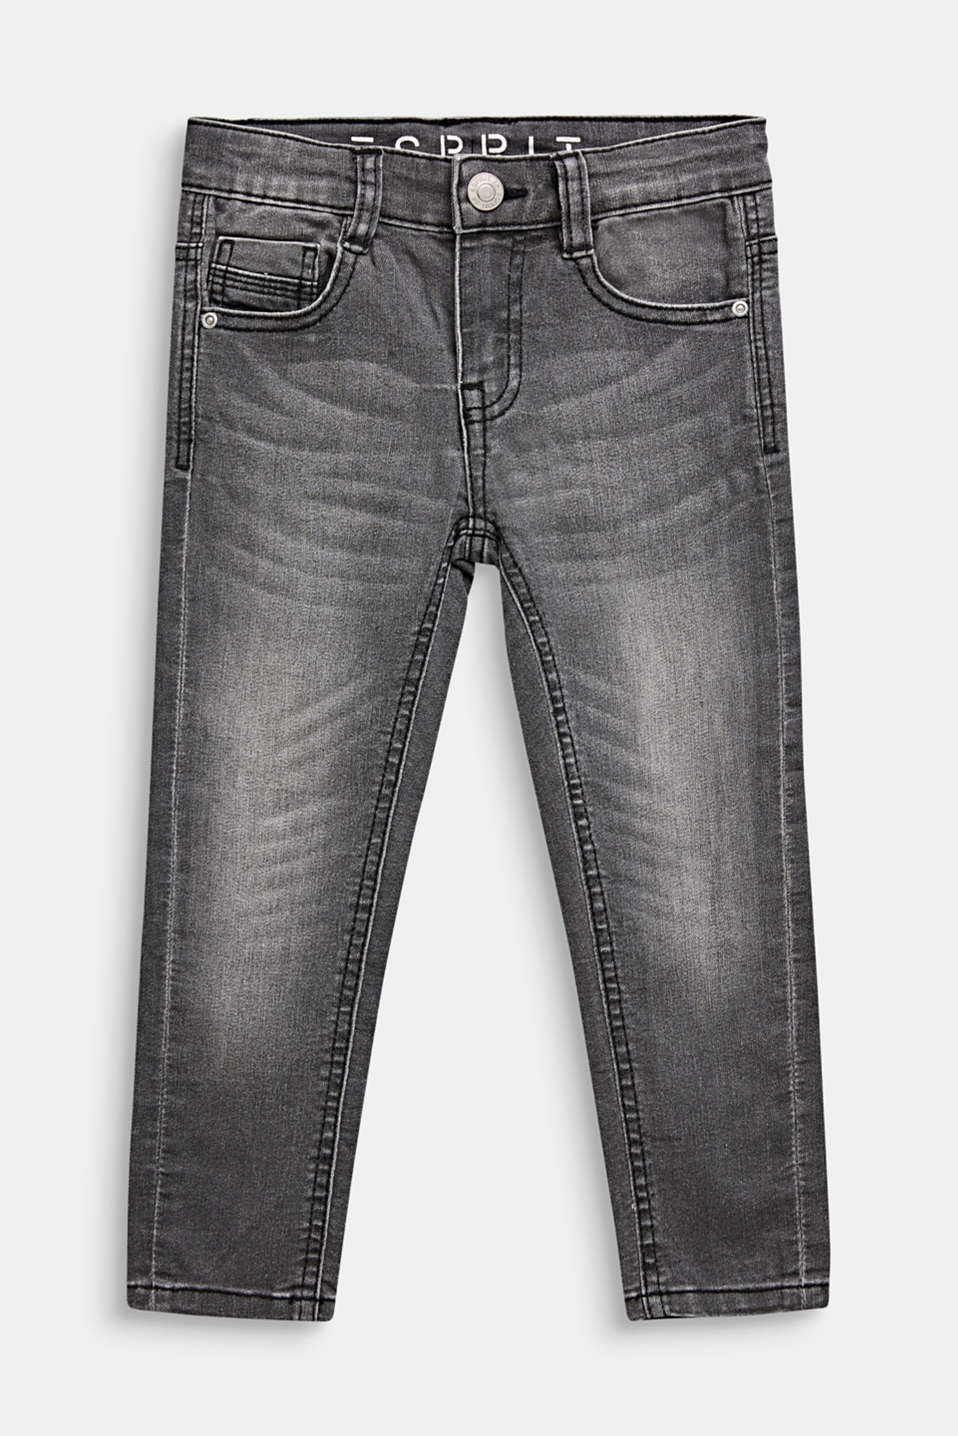 Esprit - Grey stretch jeans in a garment-washed look